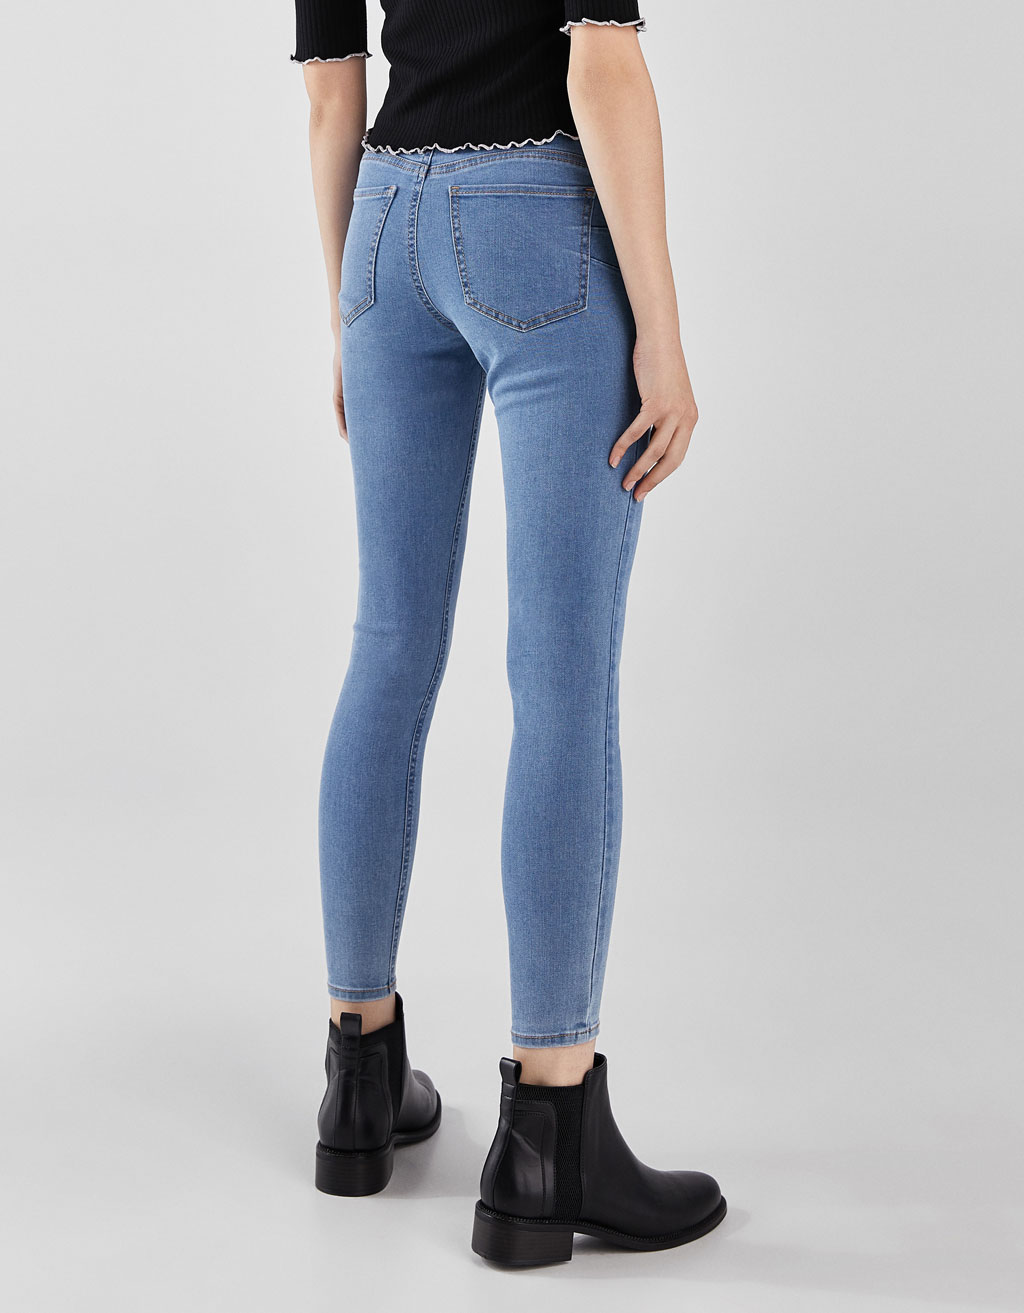 Low waist push-up jeans